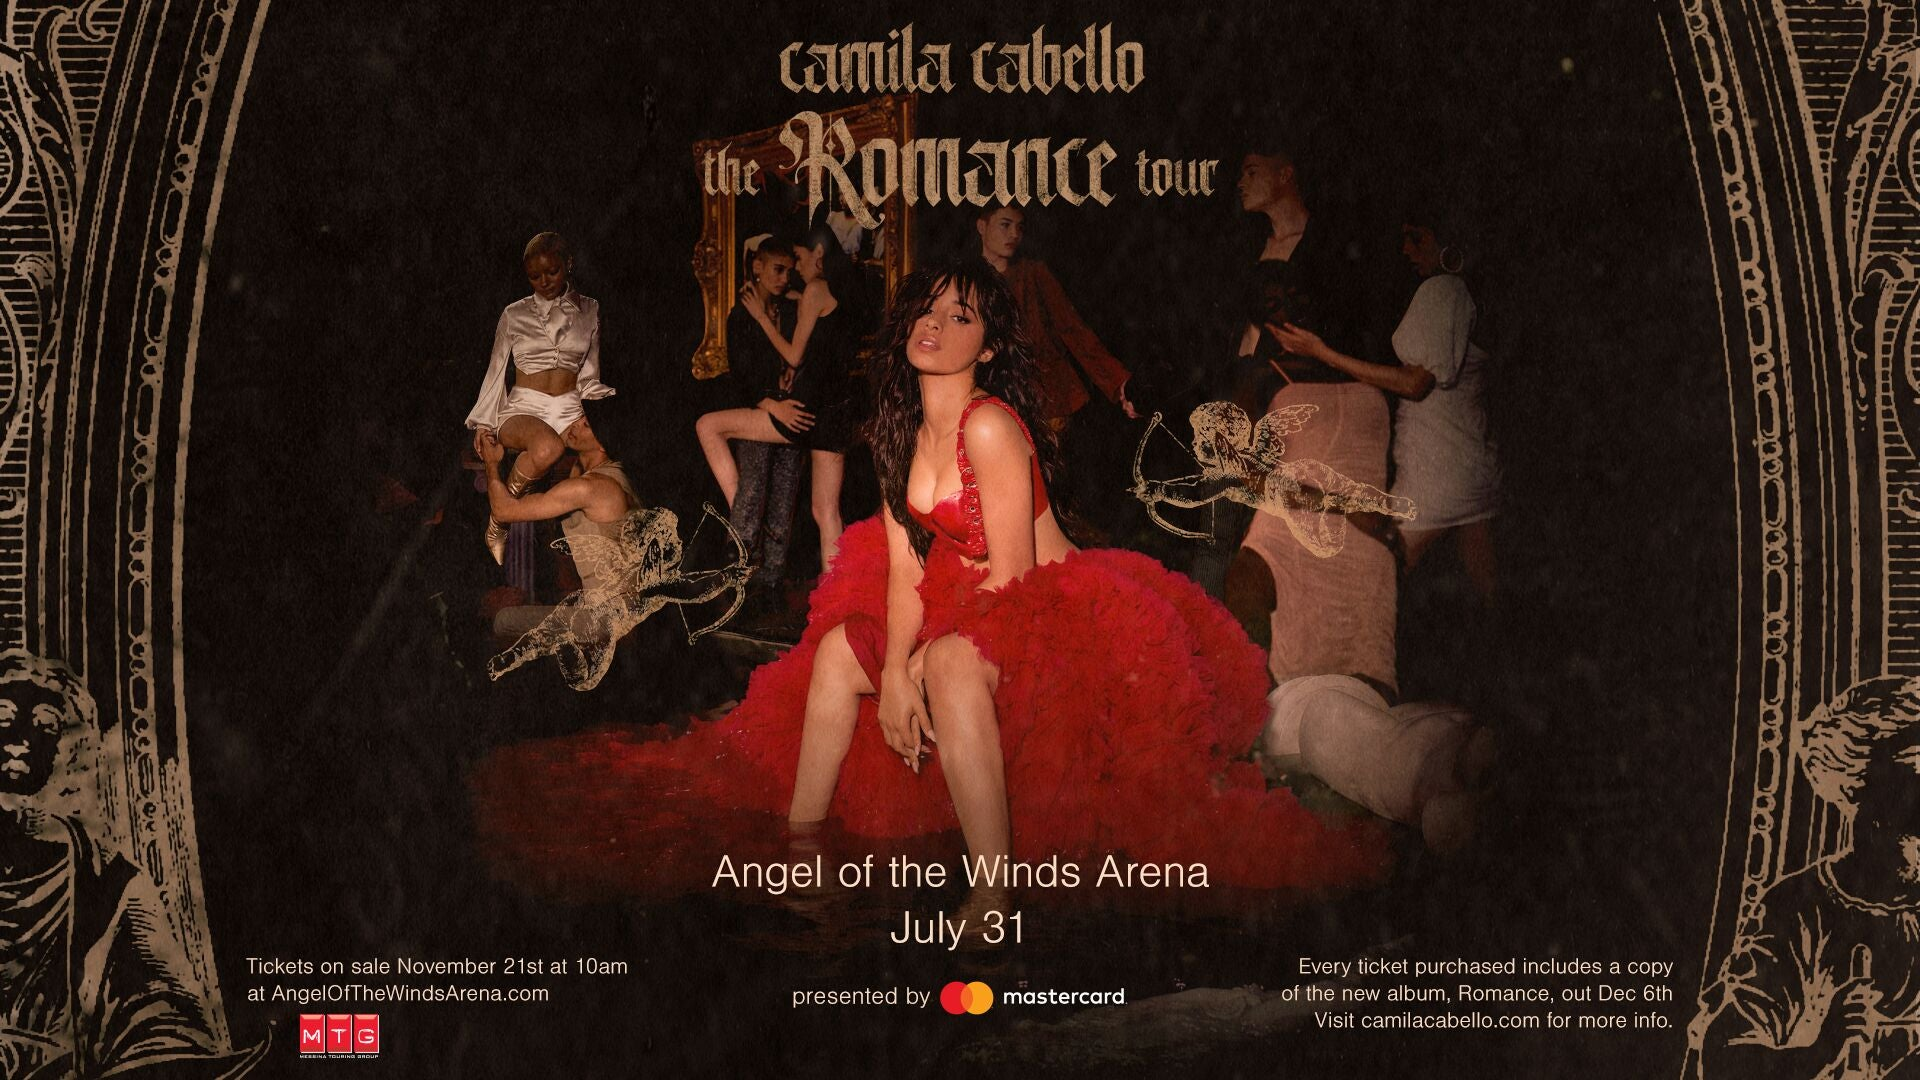 Camila Cabello: The Romance Tour presented by Mastercard